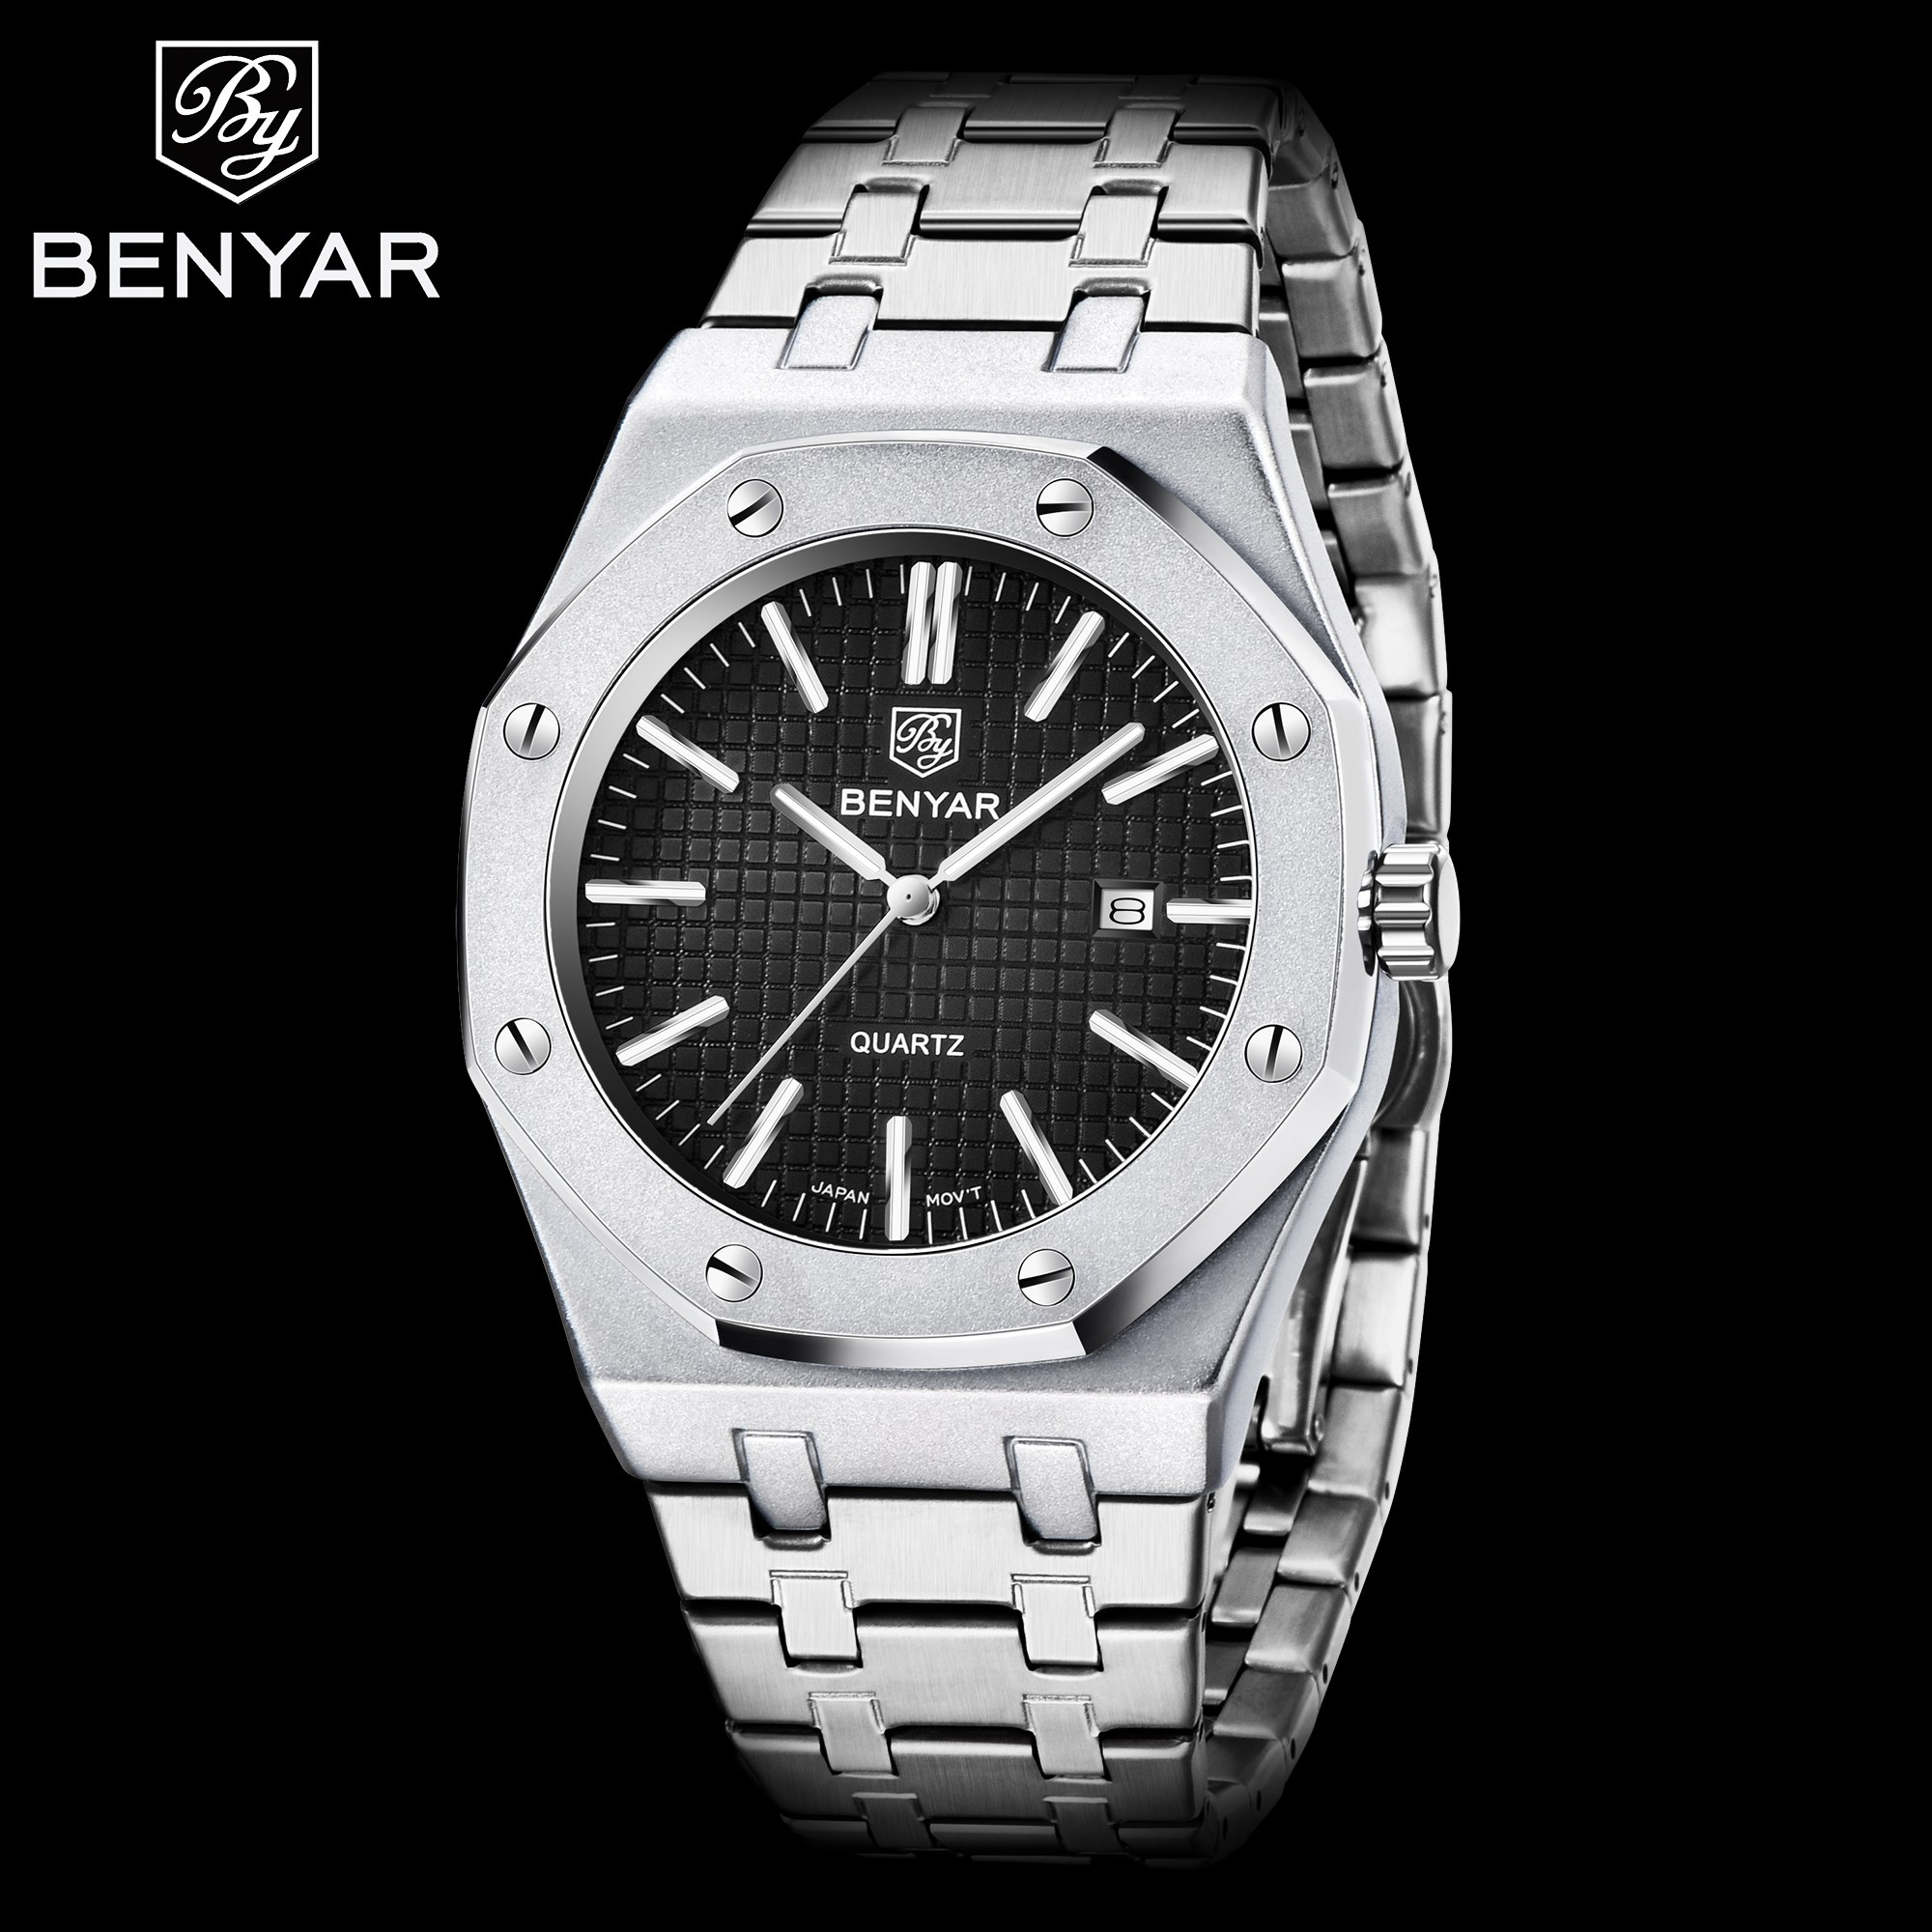 BENYAR 2020New Mens Watches Luxury Brand Quartz Sport Watch Men Stainless Steel Band Military Waterproof Watch Relogio Masculino|Quartz Watches| |  - title=